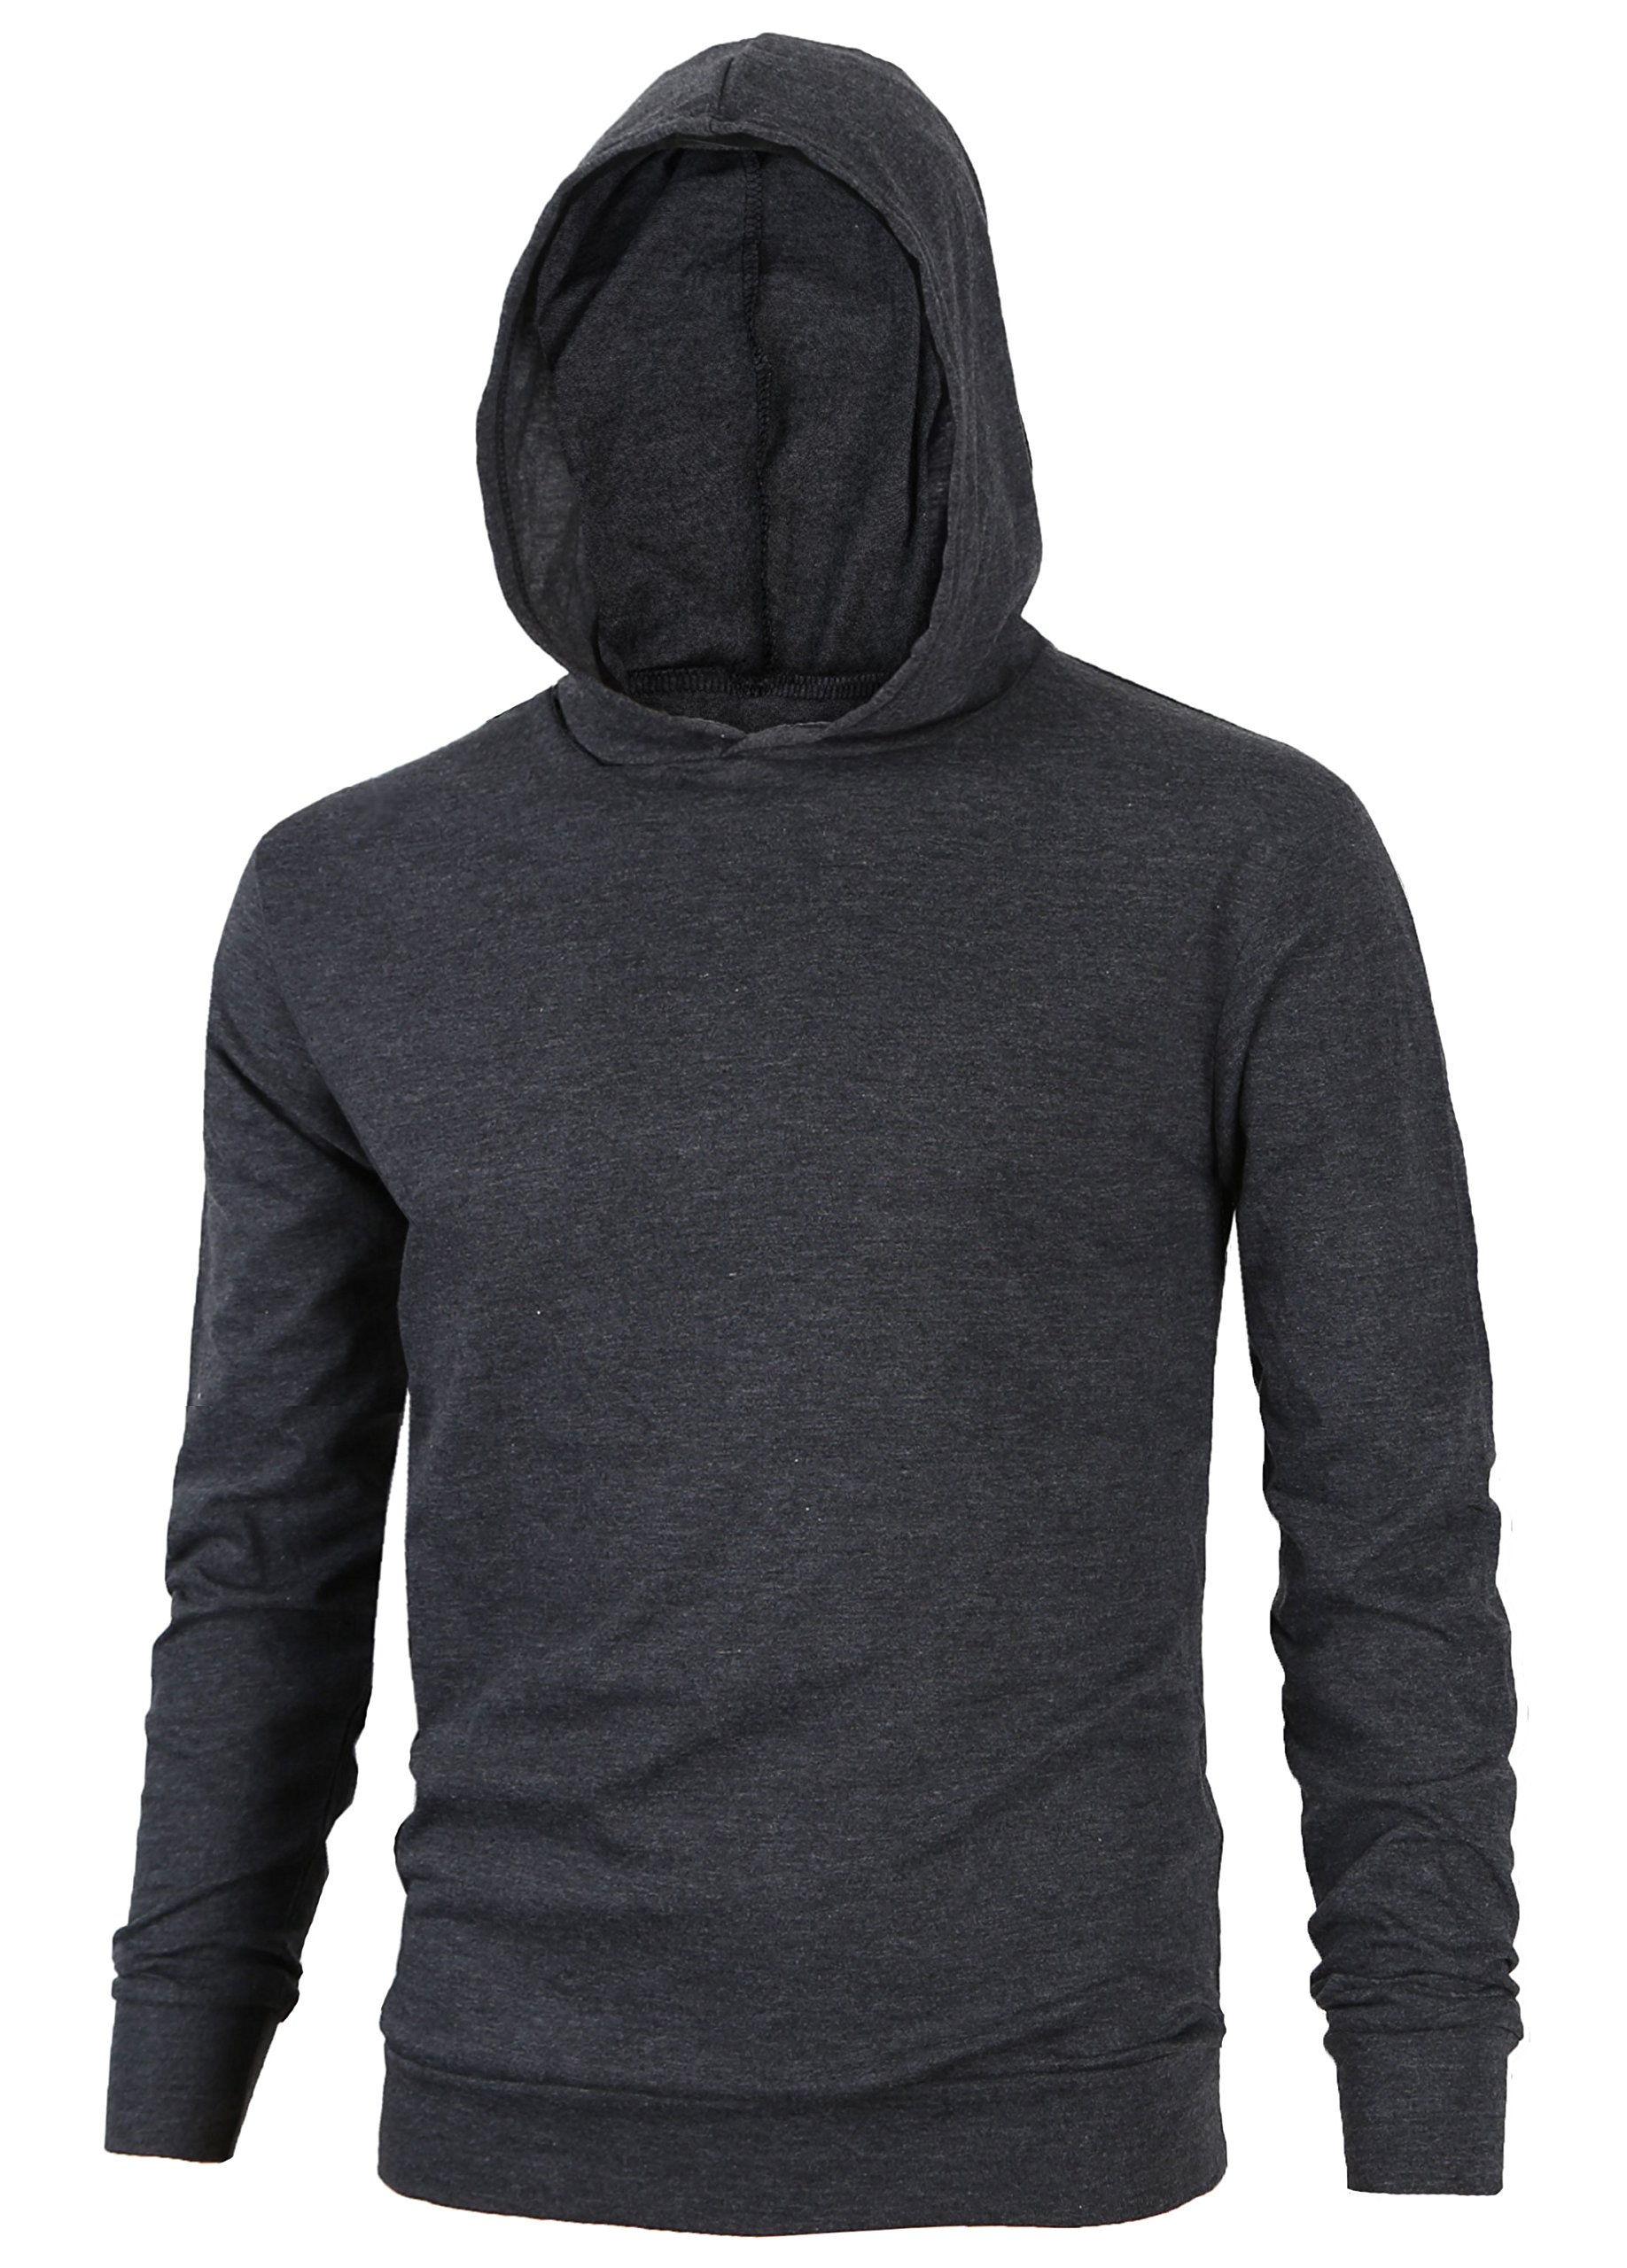 MAJECLO Mens Lightweight Cotton Pullover Long Sleeve Hoodie Sweatshirt(Small,Charcoal)